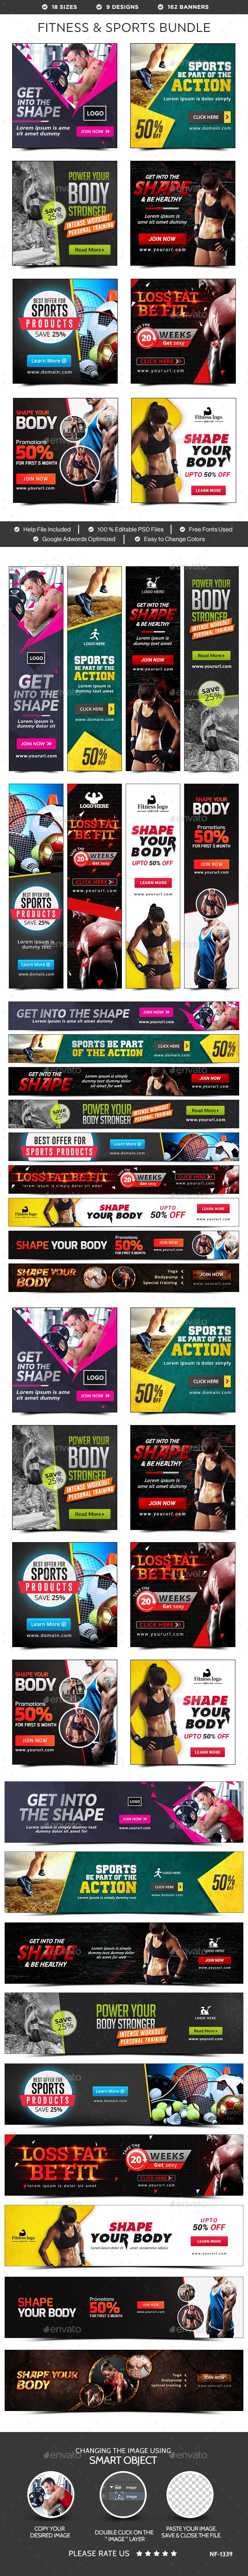 Fitness & Sports Banners Bundle - 9 Sets - 162 Banners Templates PSD. Download here: http://graphicriver.net/item/fitness-sports-banners-bundle-9-sets-162-banners/16442684?ref=ksioks